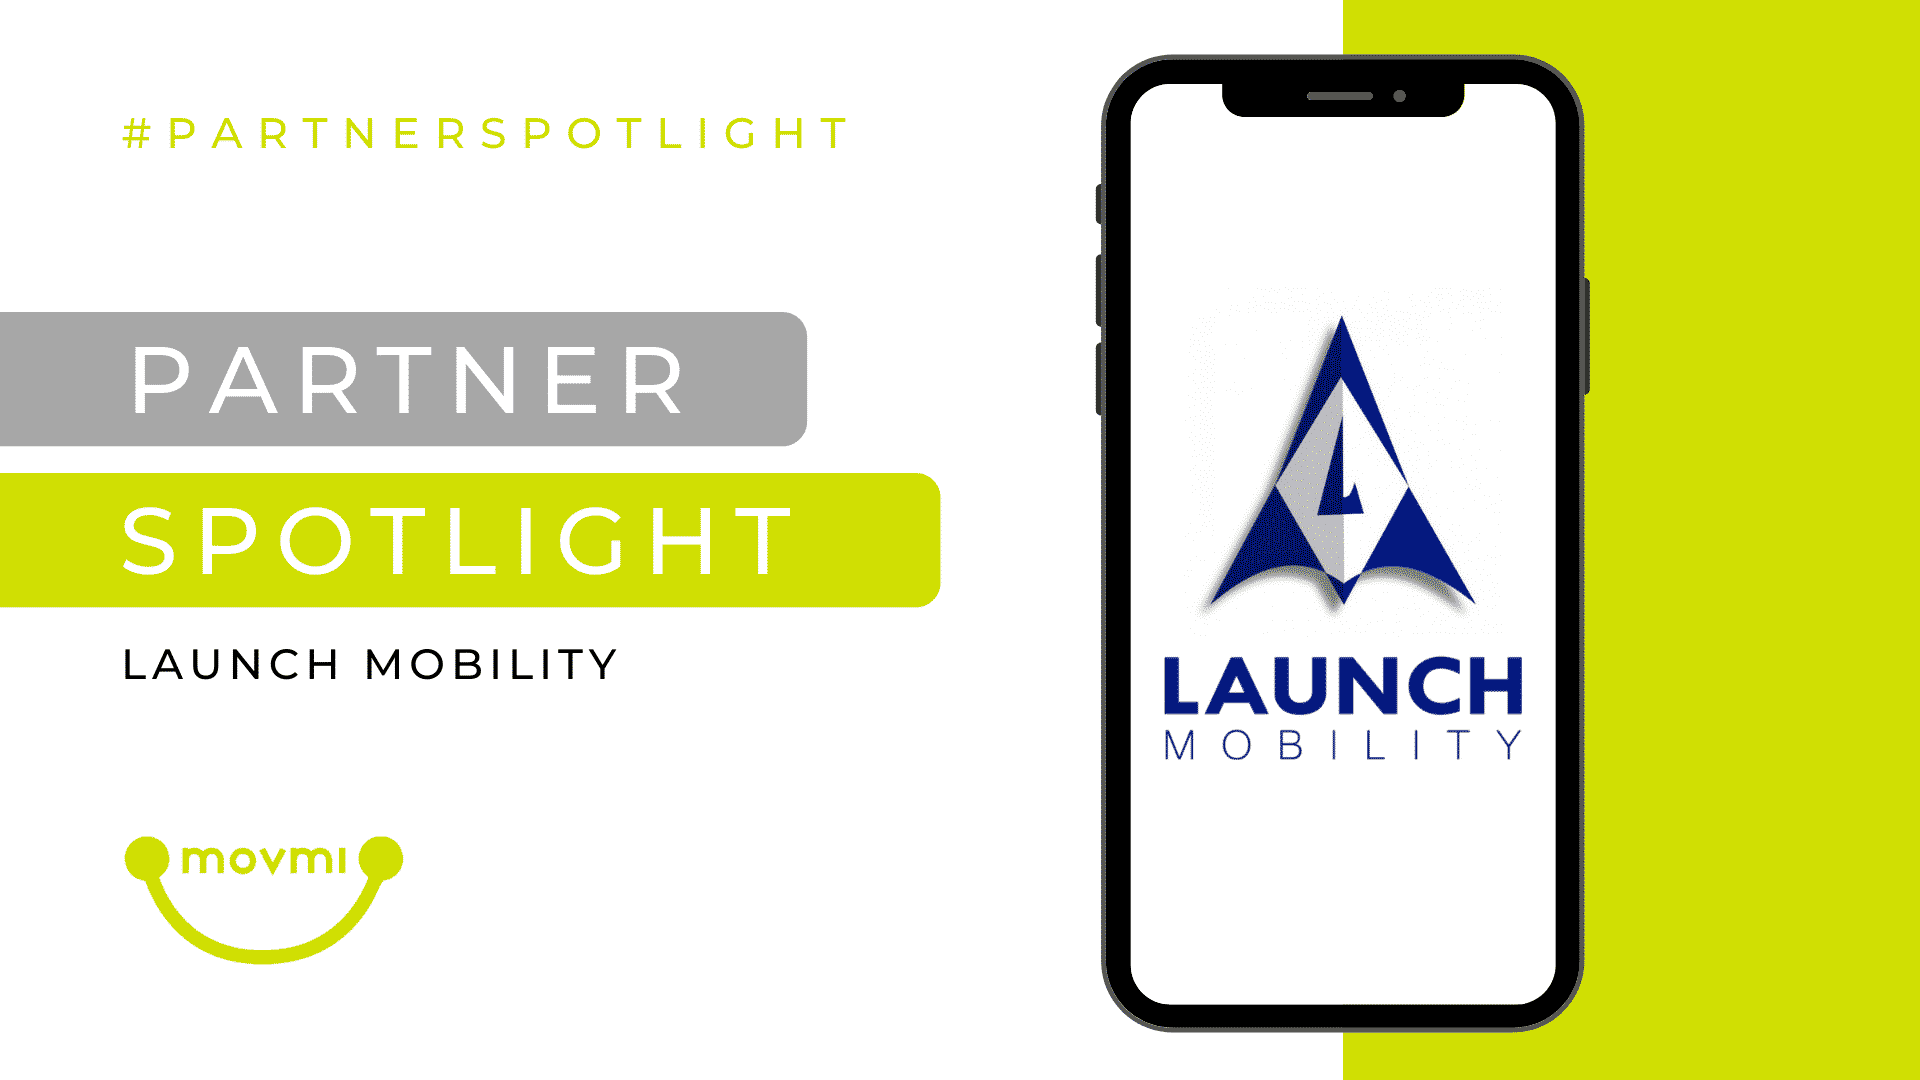 launch mobility